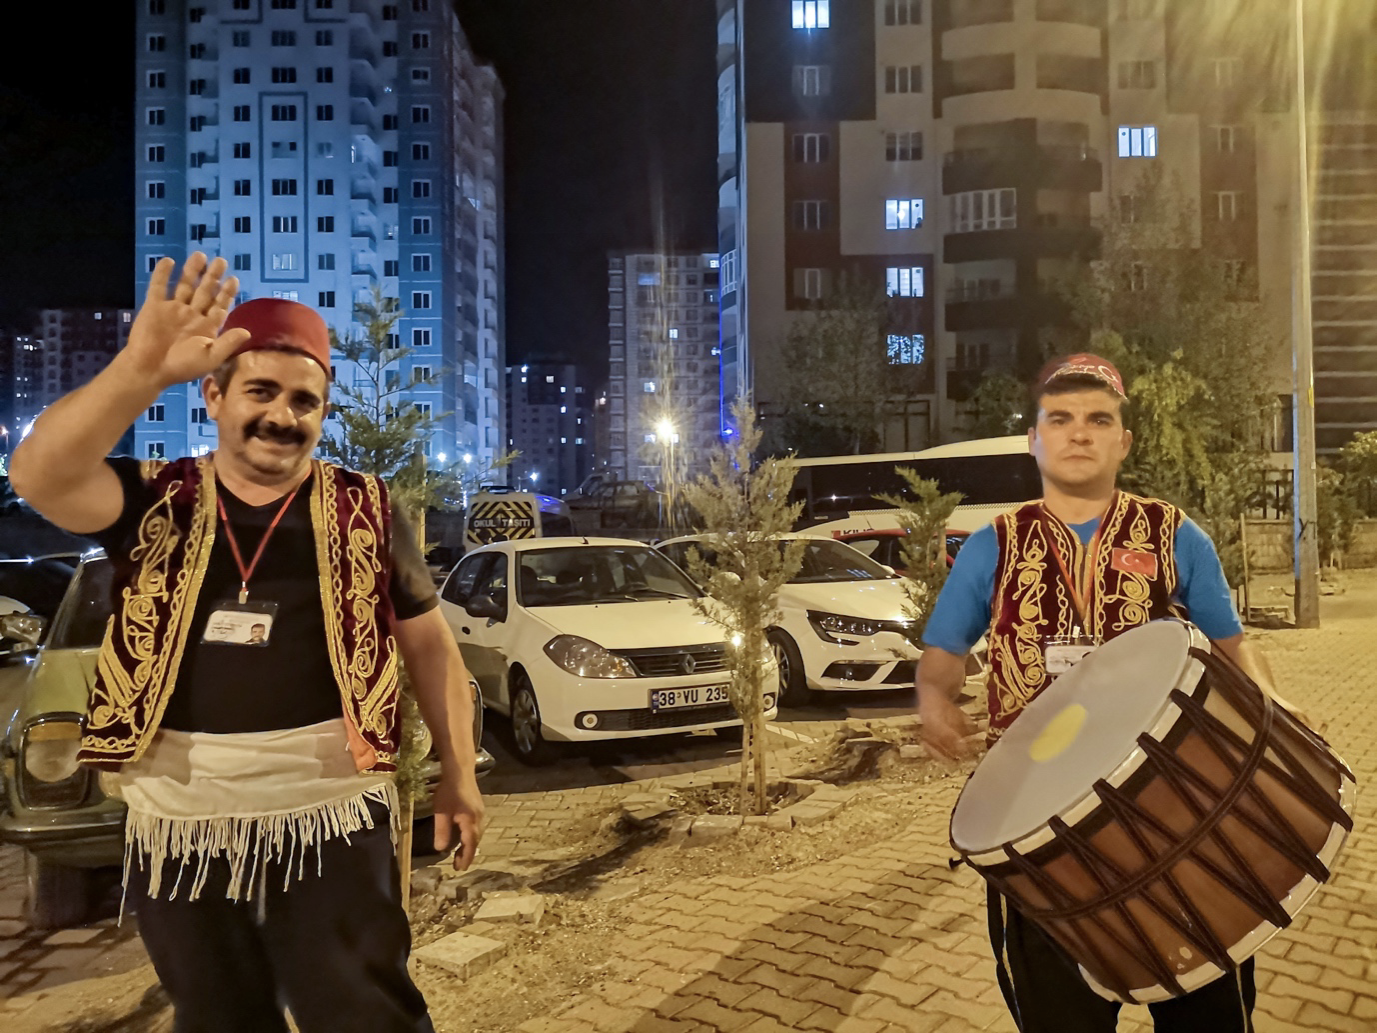 Ramadan drummers wake people up at 2am during the Islamic holy month